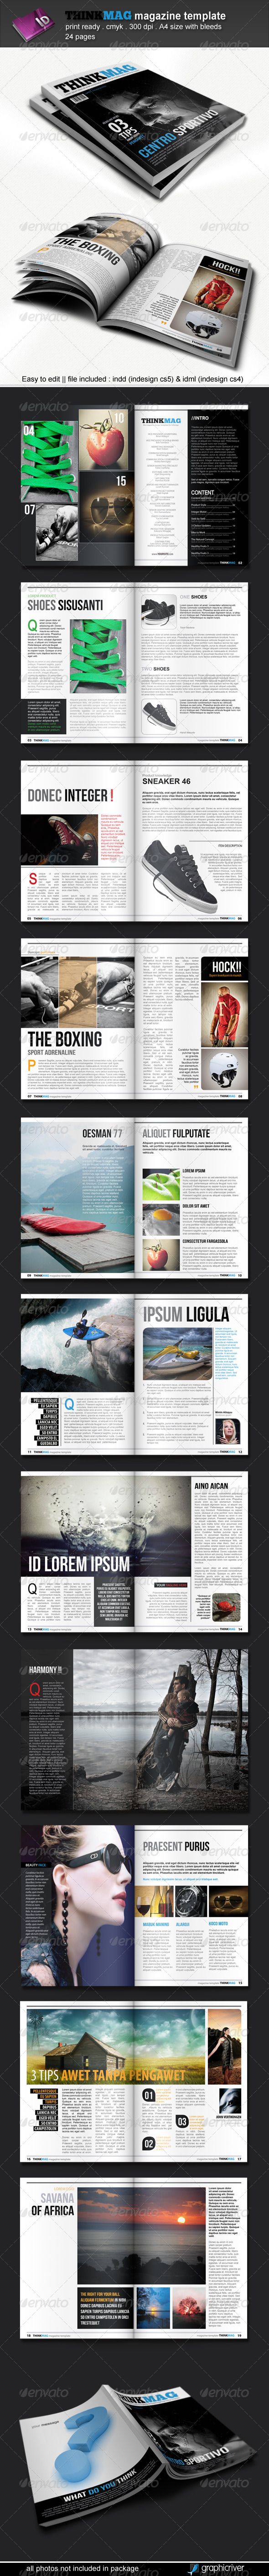 Thinkmag Magazine Template - Magazines Print Templates